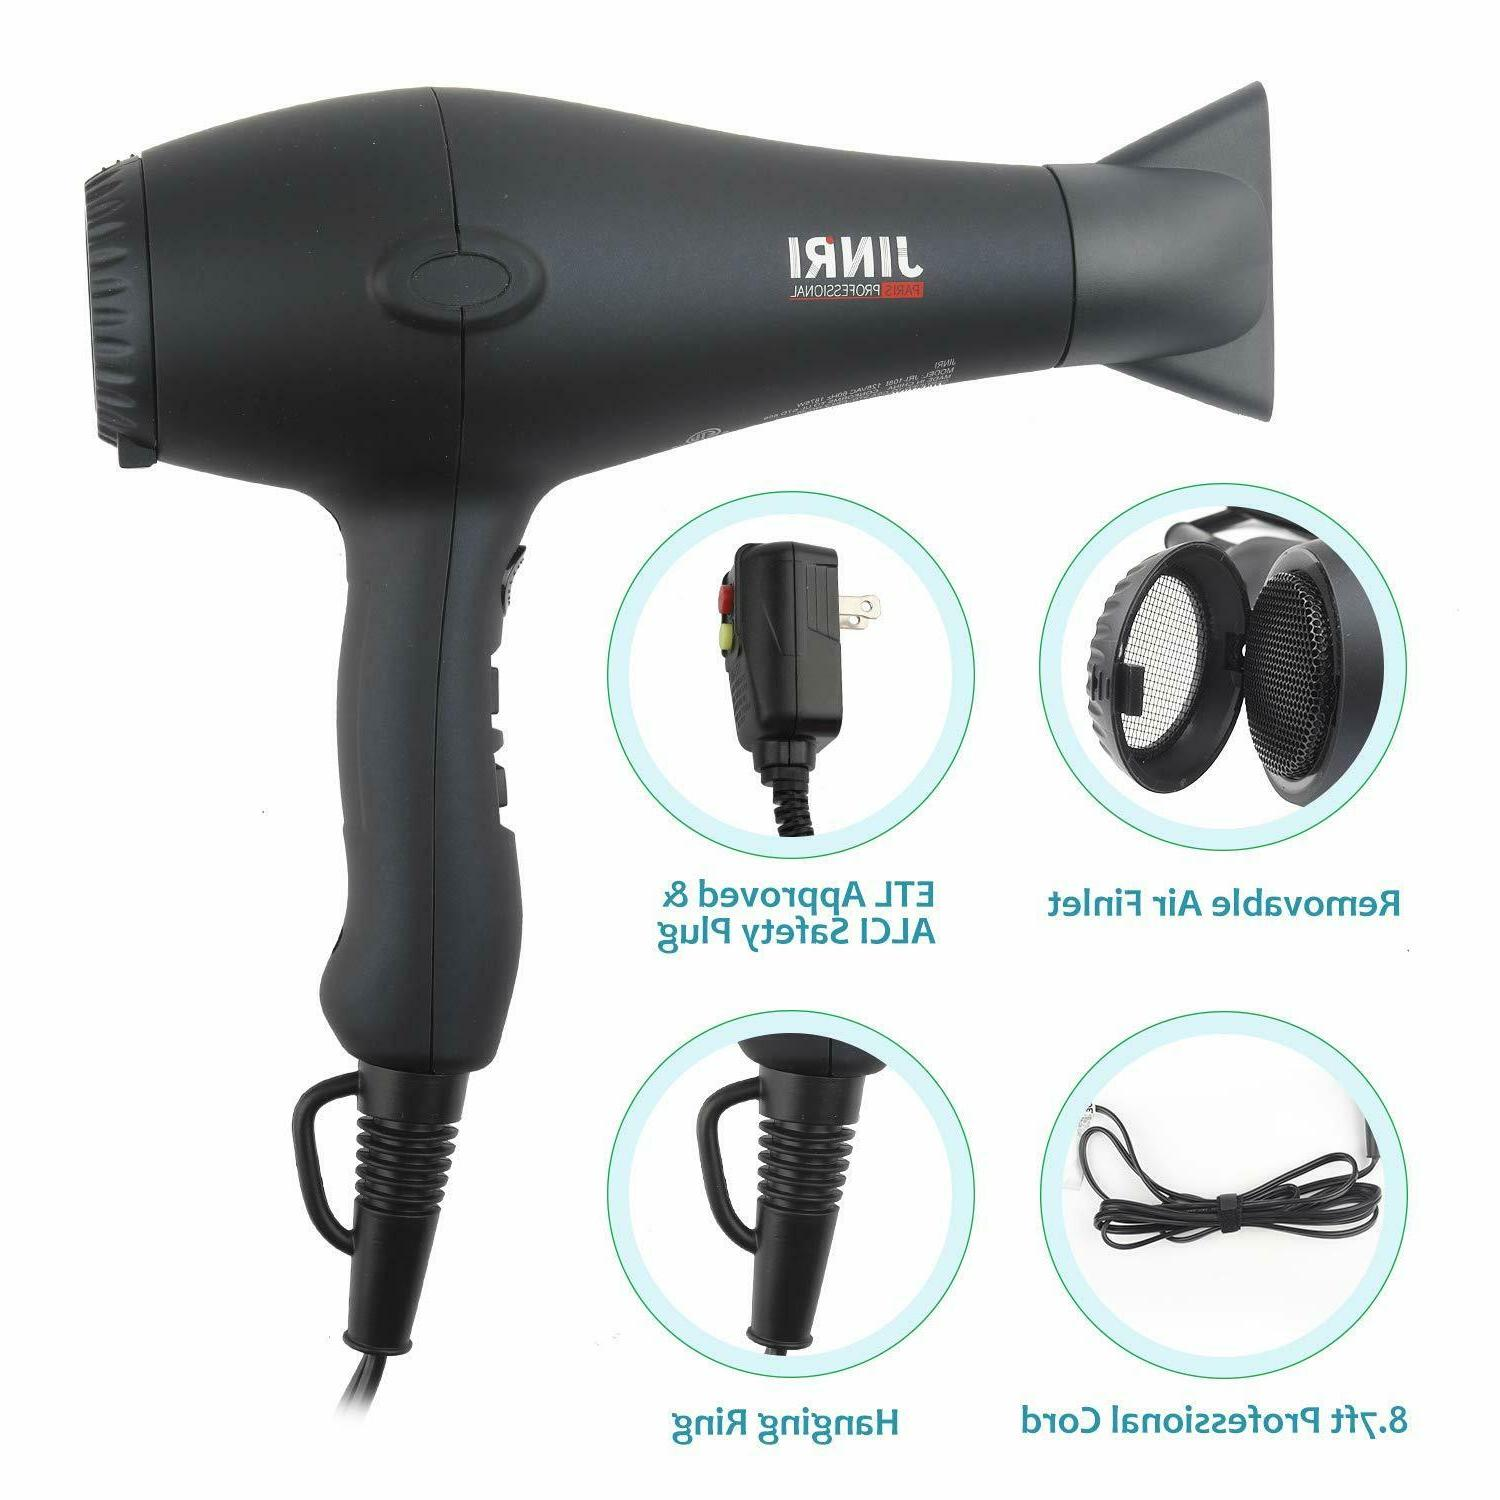 JINRI1875W Professional Hair with & Concentrator